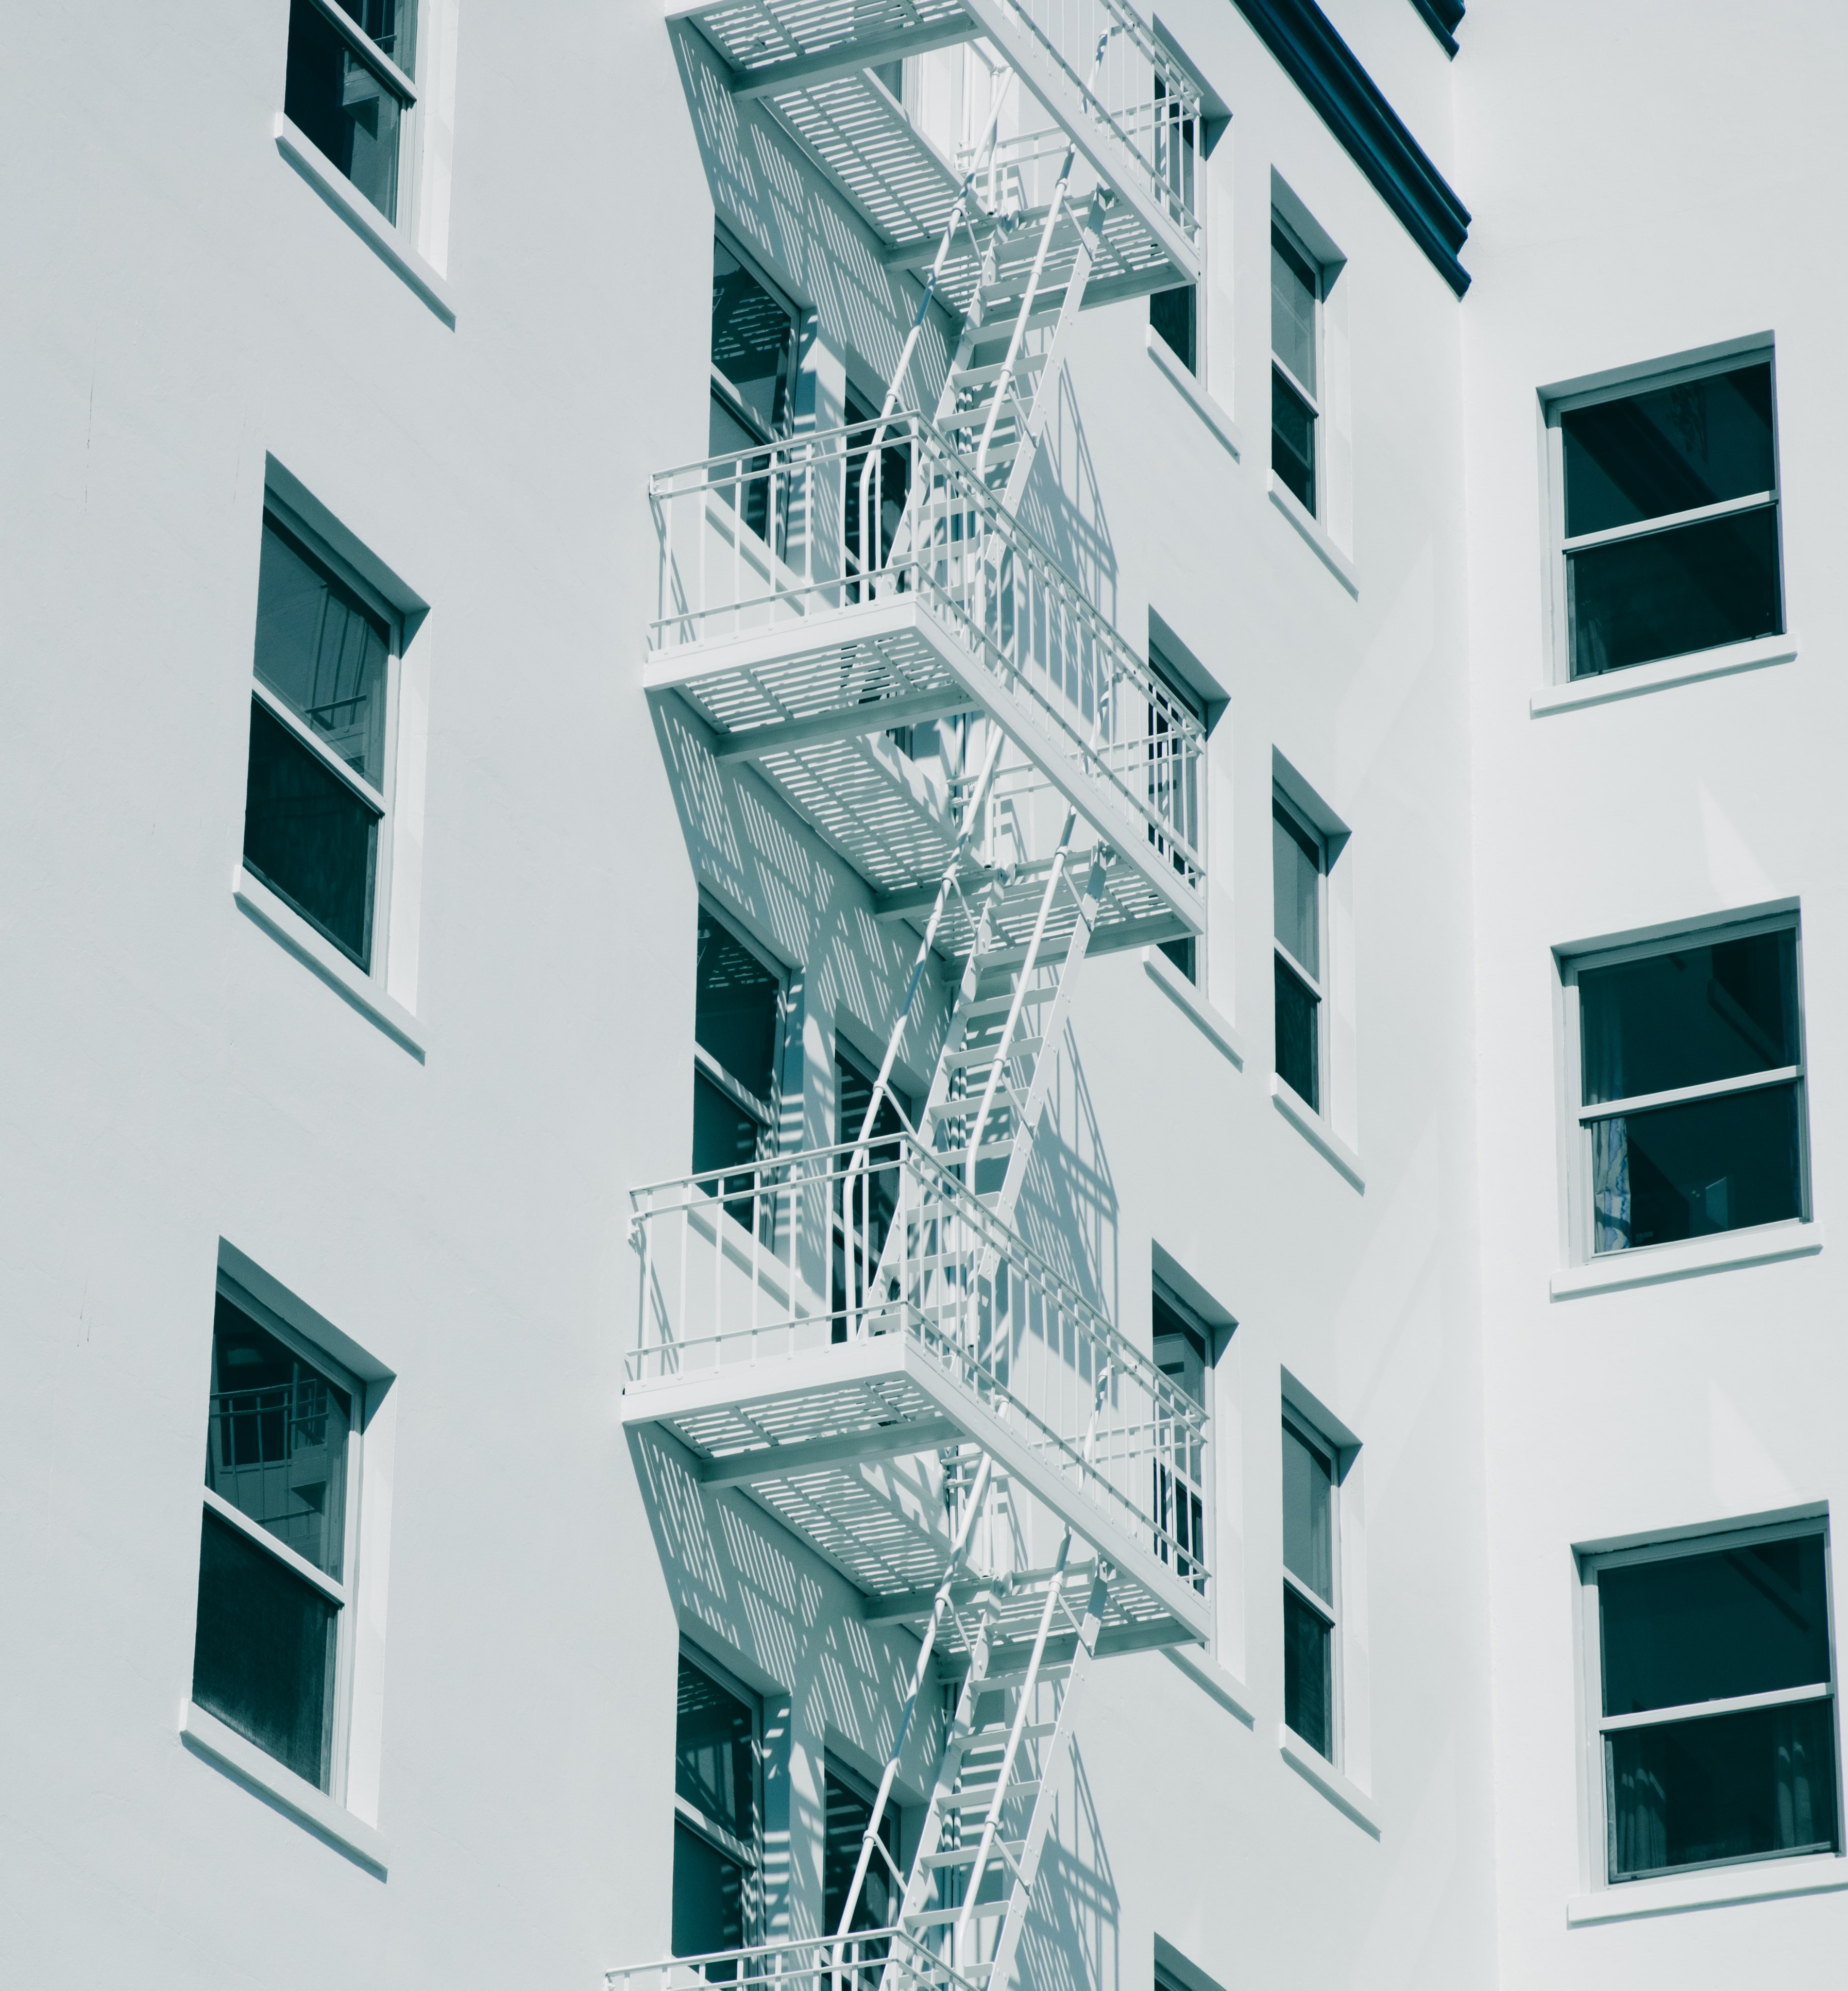 Black and white shot of white fire escape staircase and windows on building in Berkeley